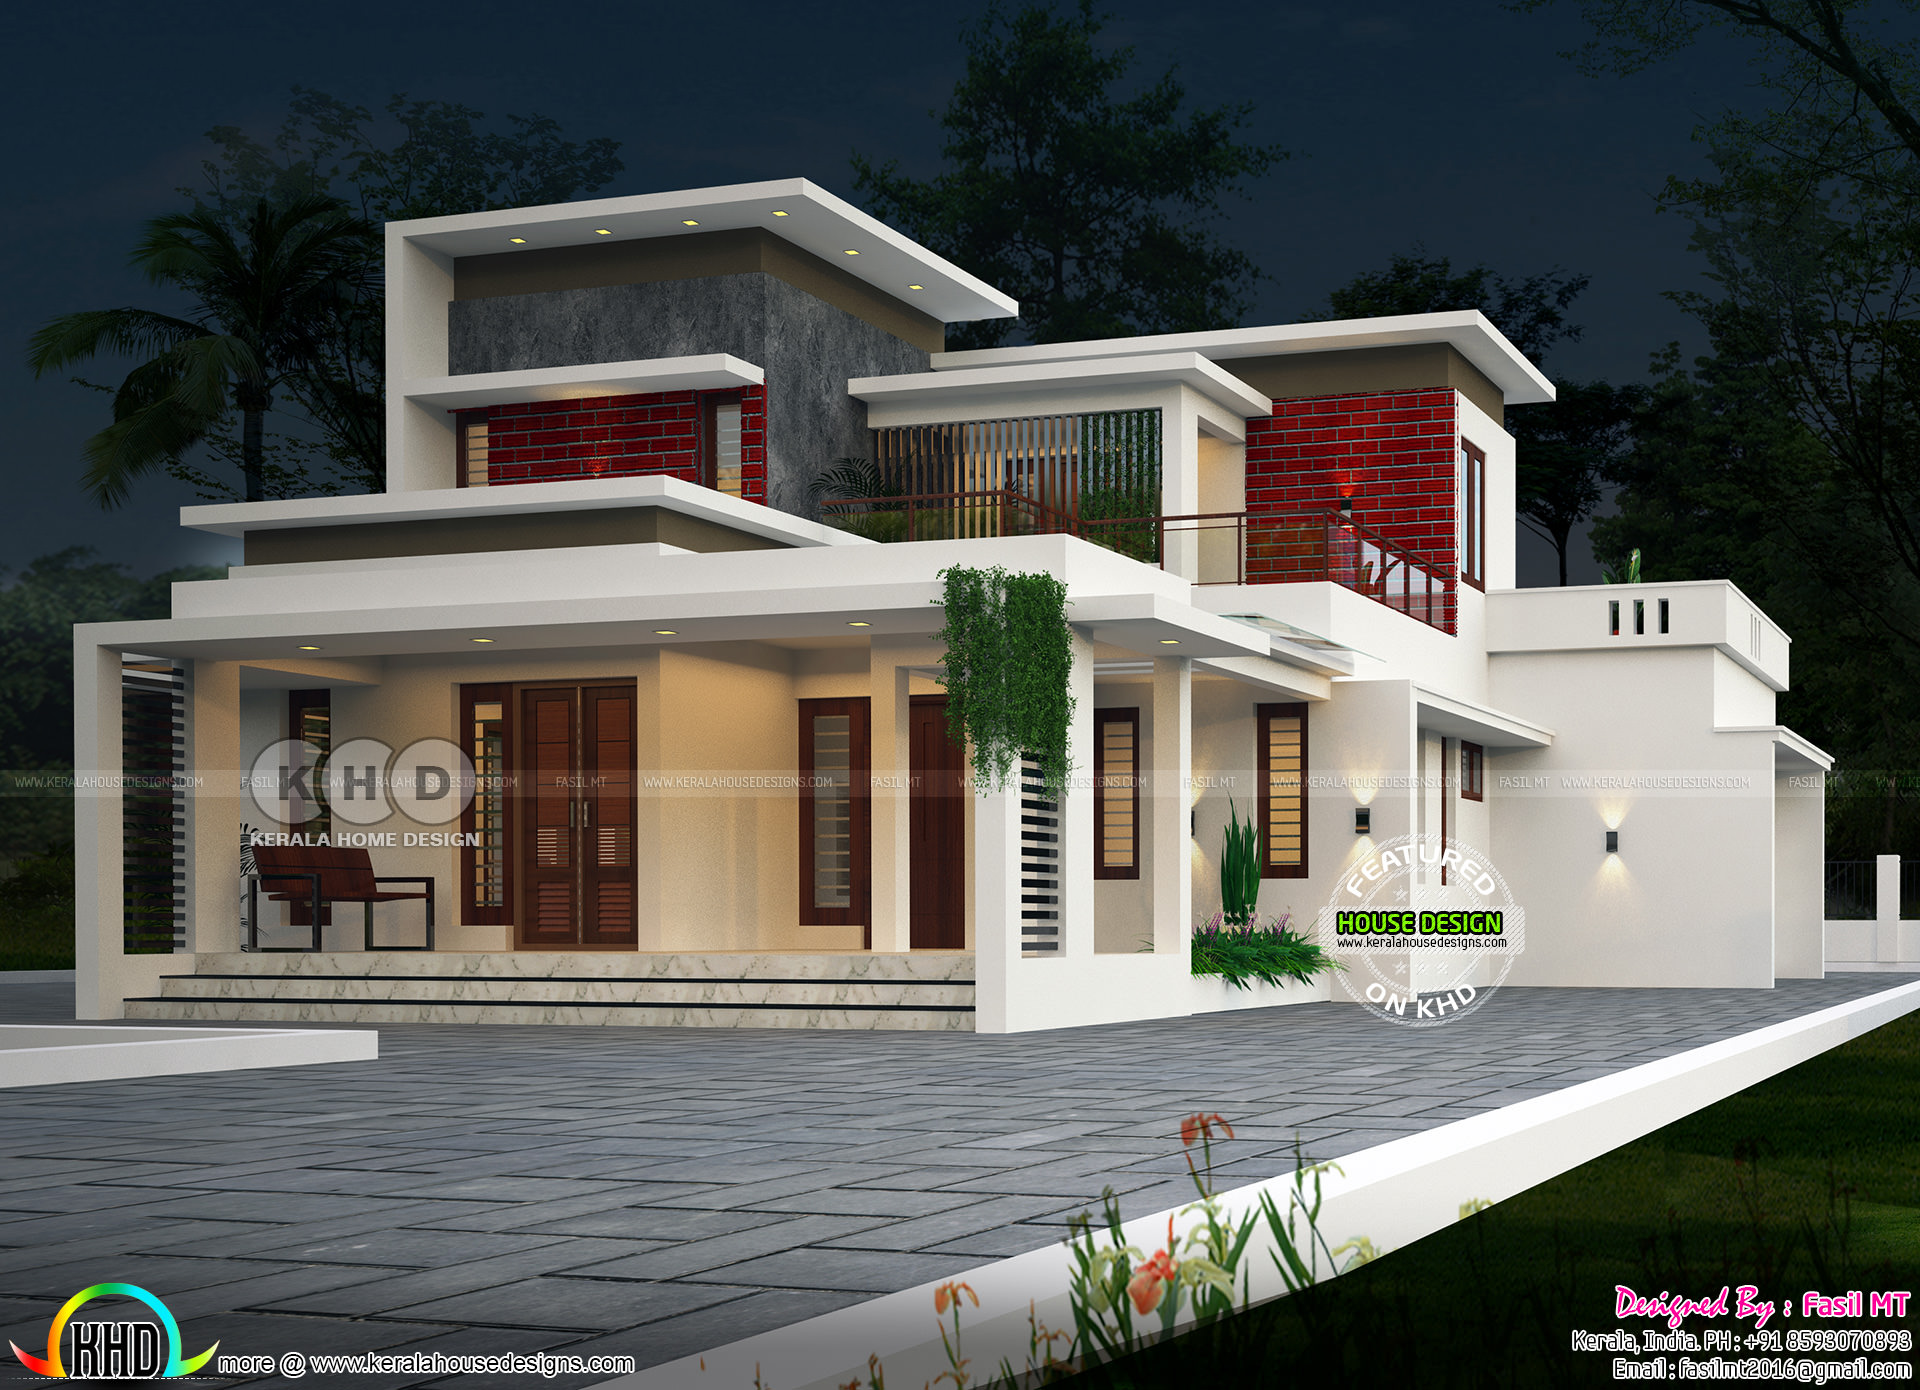 1980 Sq Ft Flat Roof Modern Contemporary 3 Bhk House Kerala Home Design And Floor Plans 8000 Houses